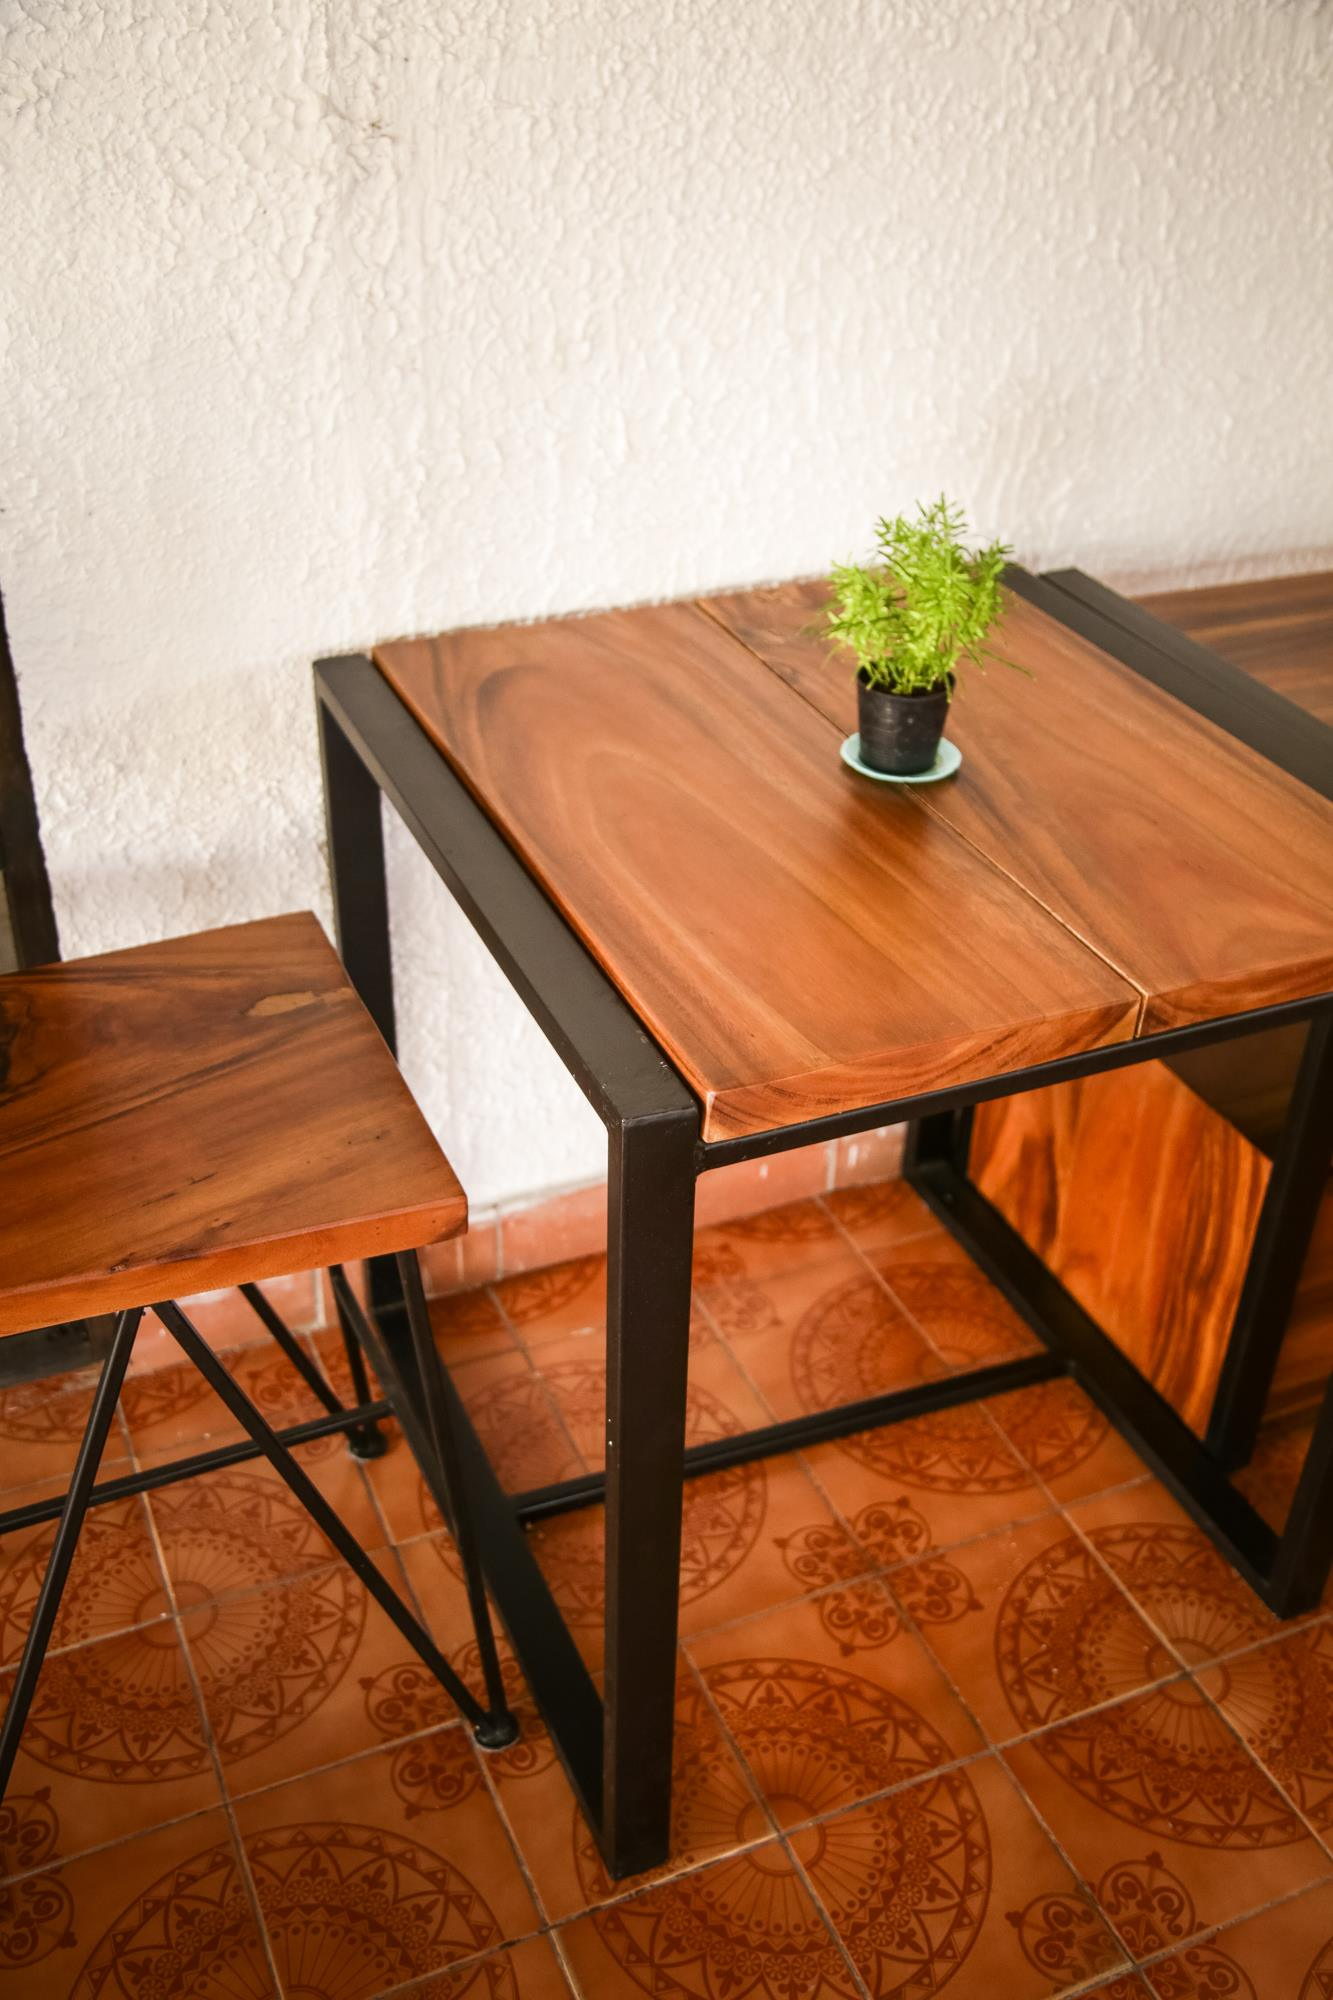 suar wood table and chair